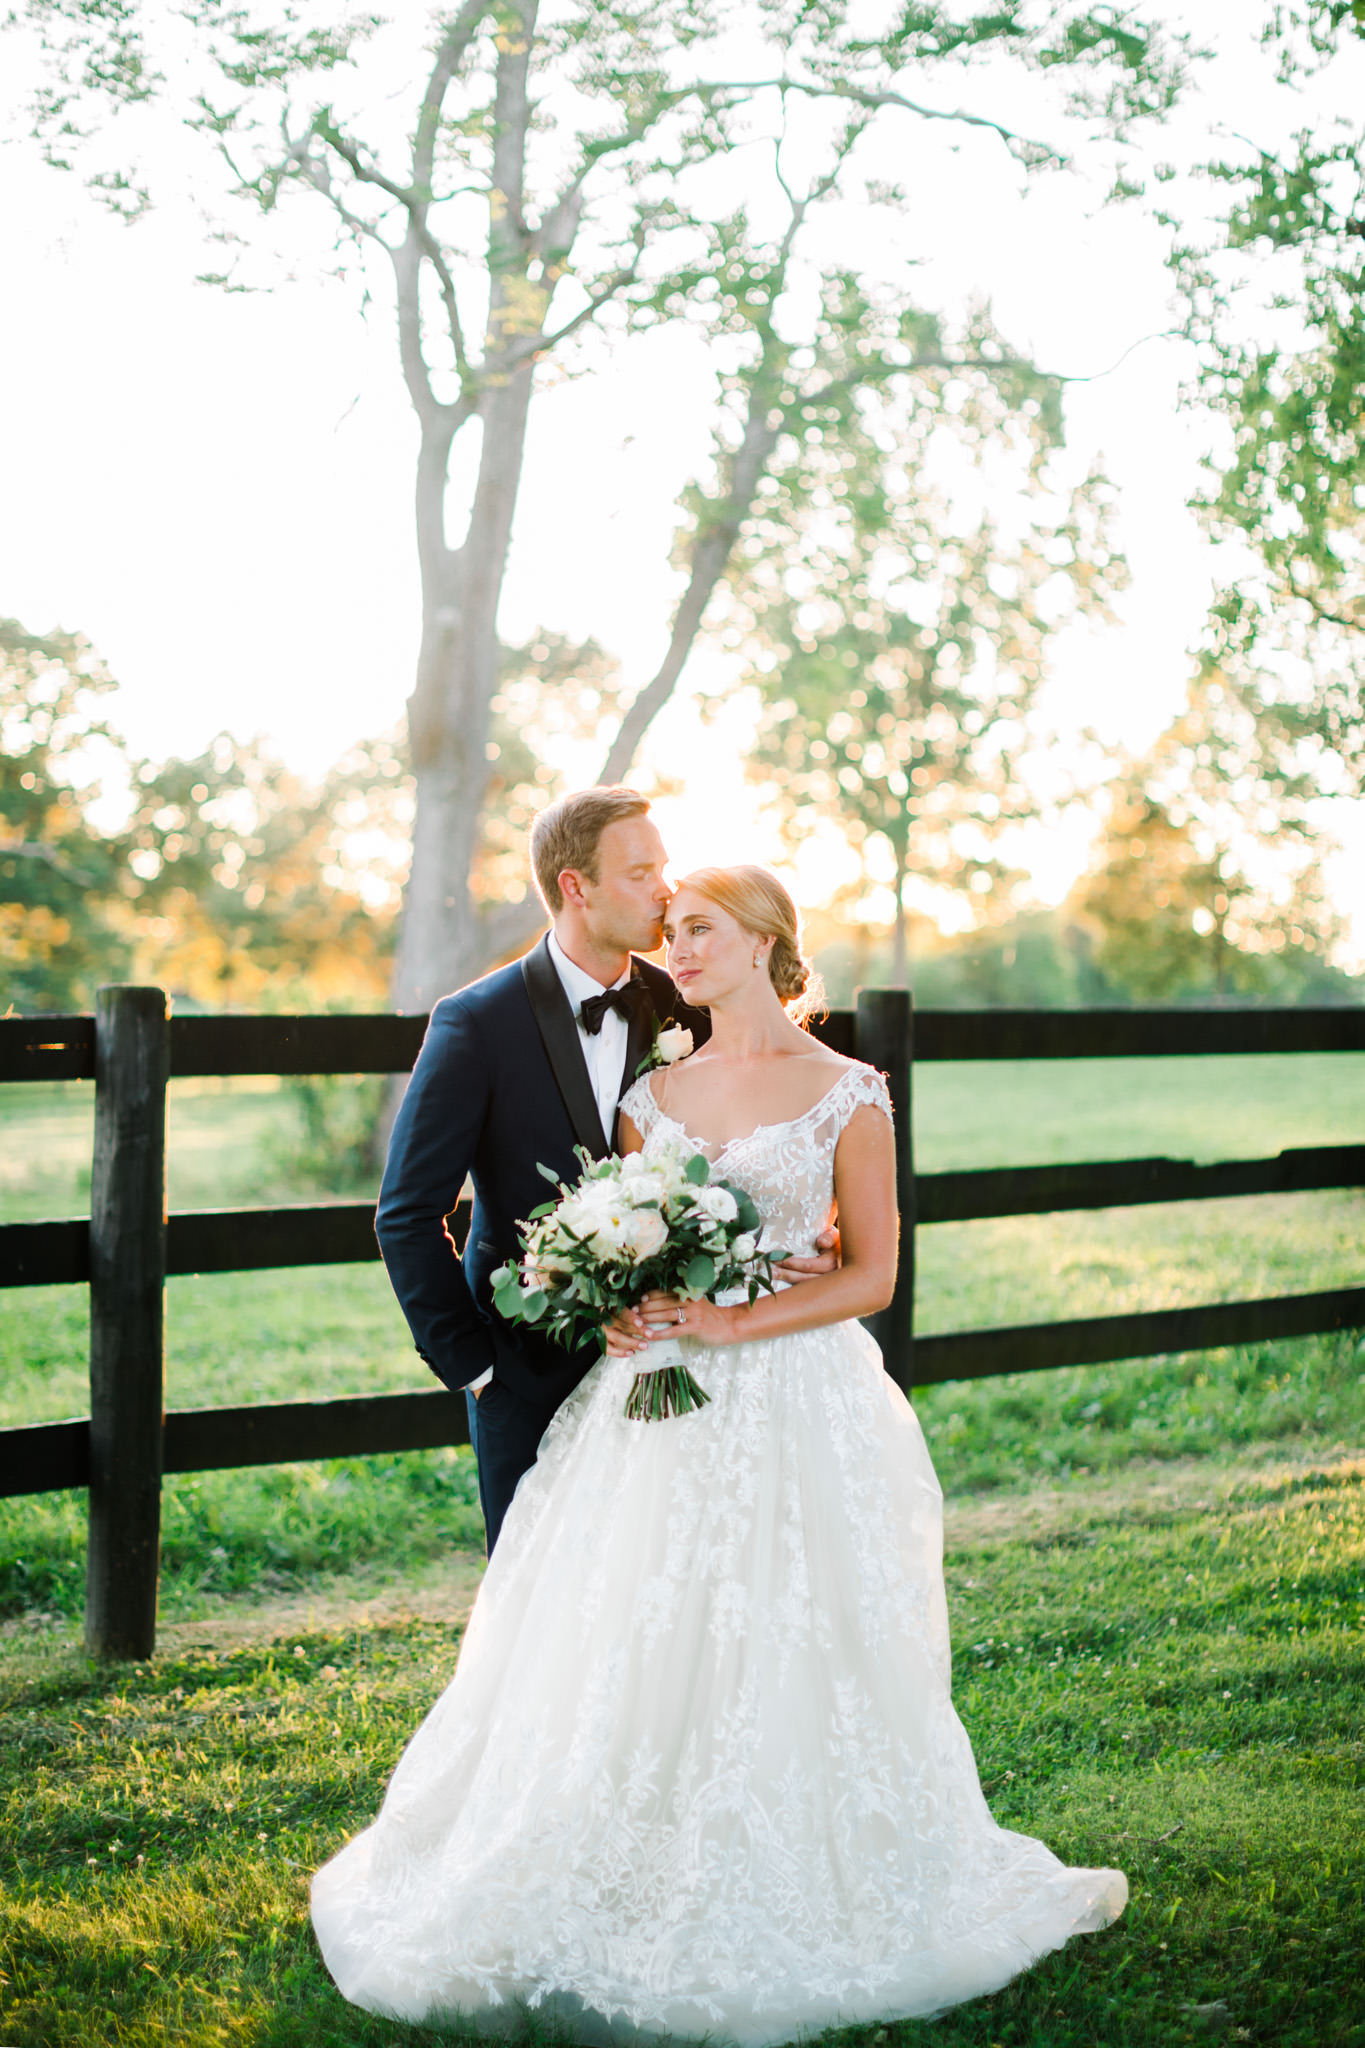 Lexington Kentucky Wedding Photographers at the Polo Barn at Saxony Farm-104.jpg